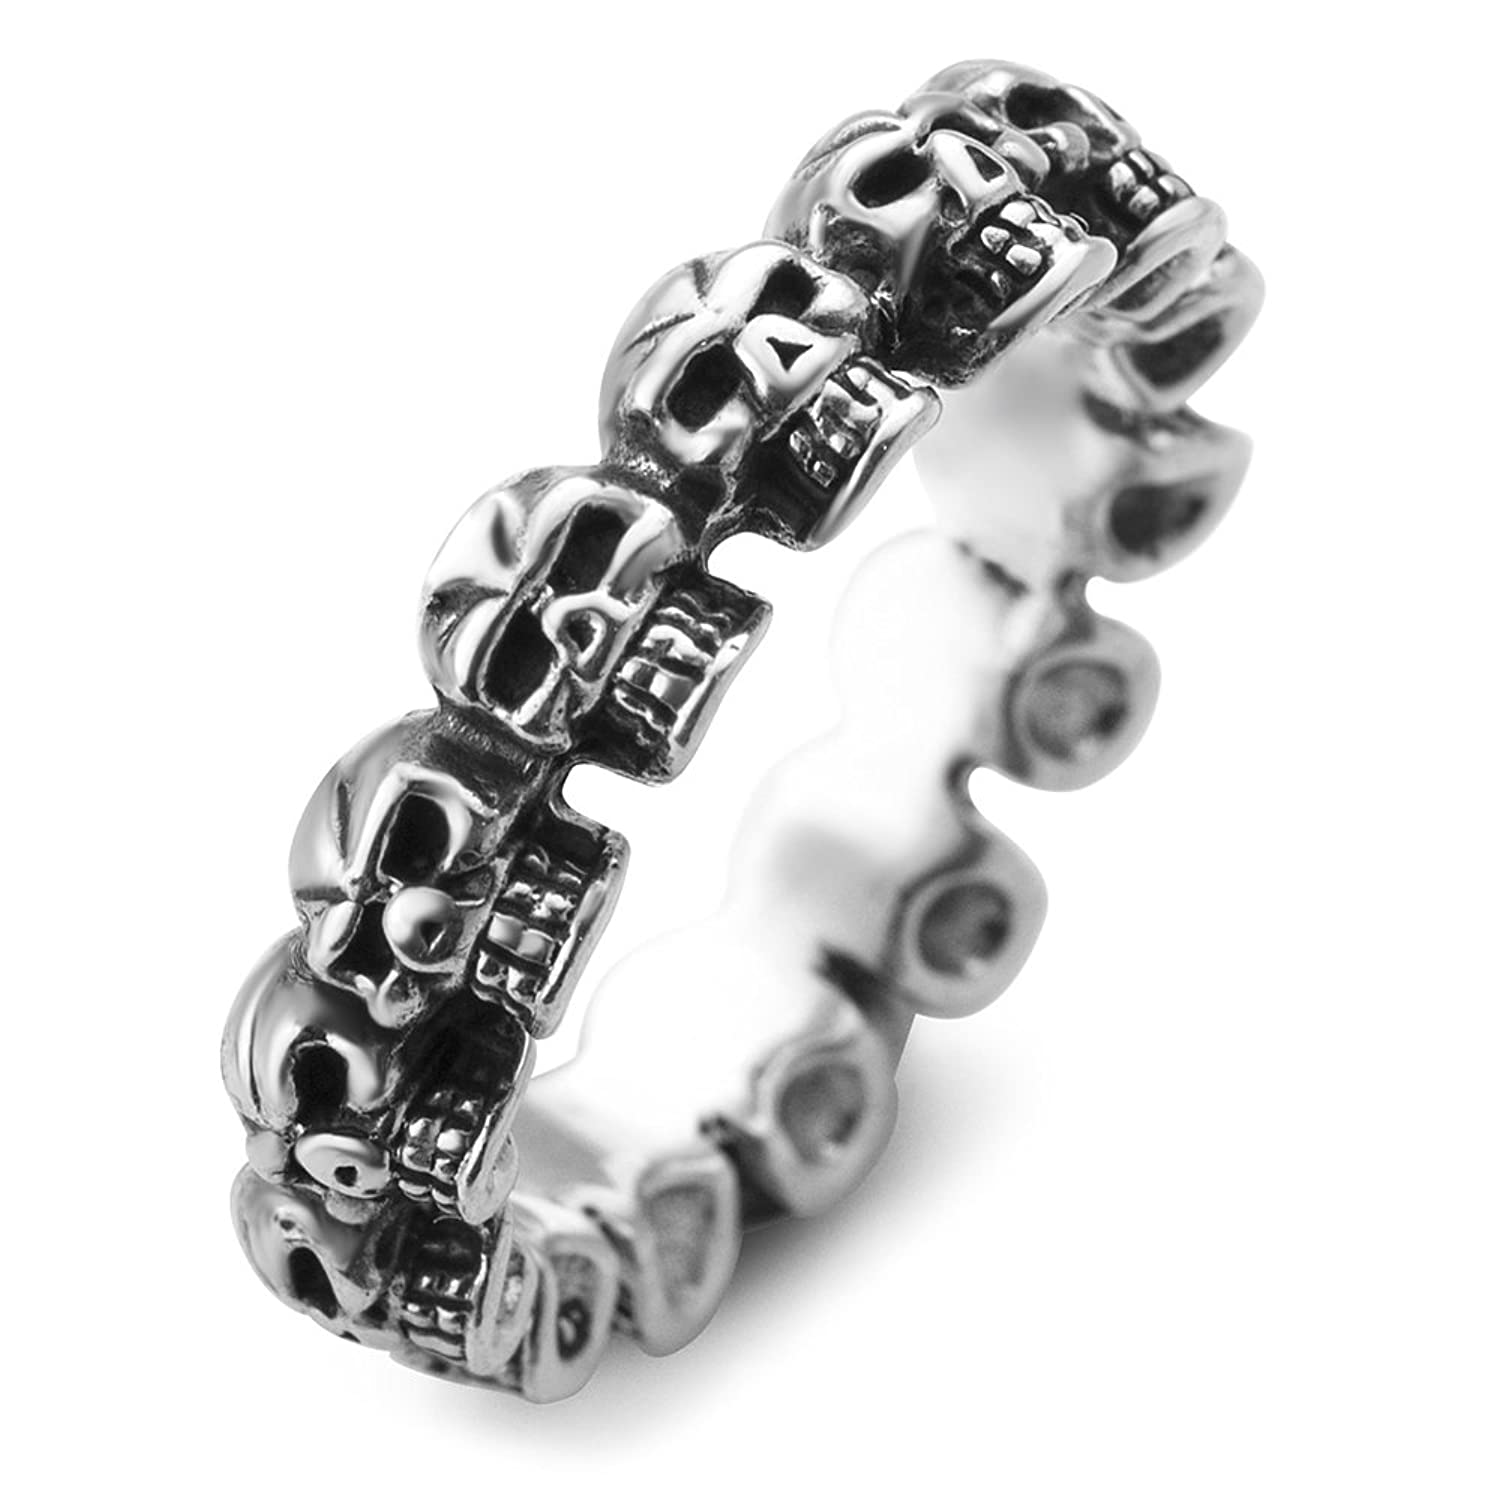 925 Sterling Silver Vintage Gothic Multi Skull Head Band Ring Men Women Unisex Size 6, 7, 8